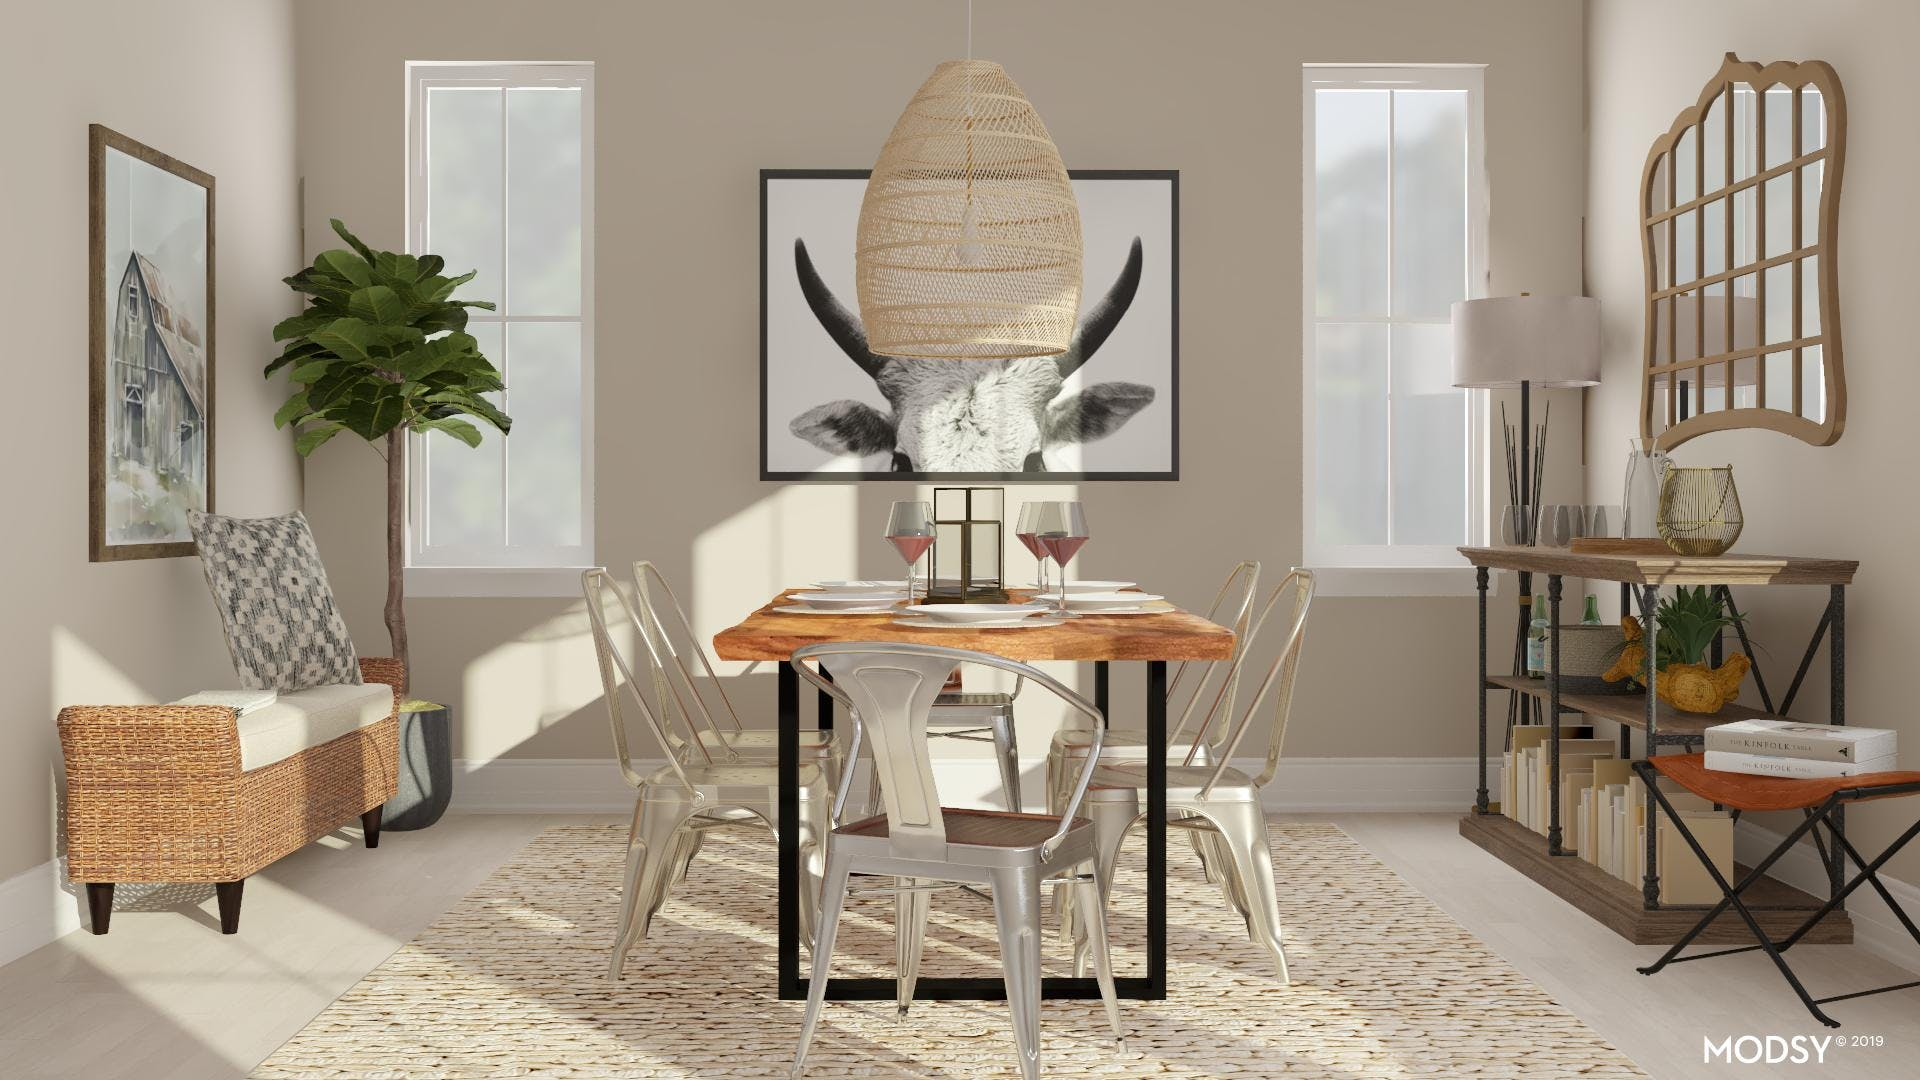 Serving Station: Rustic Dining